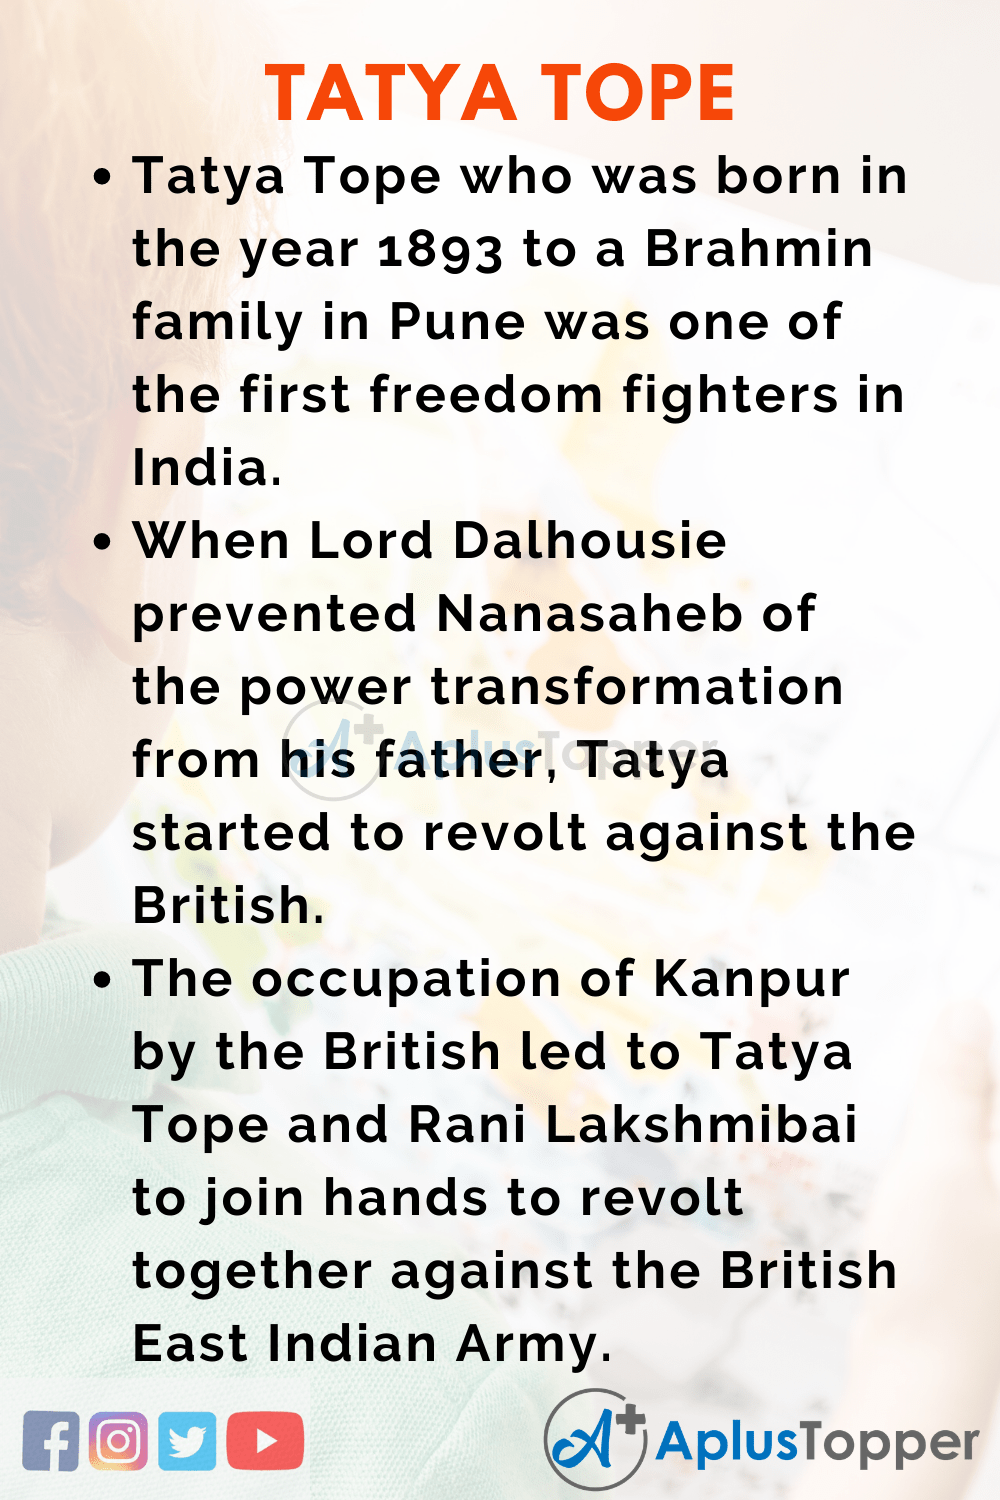 10 lines about Tatya Tope